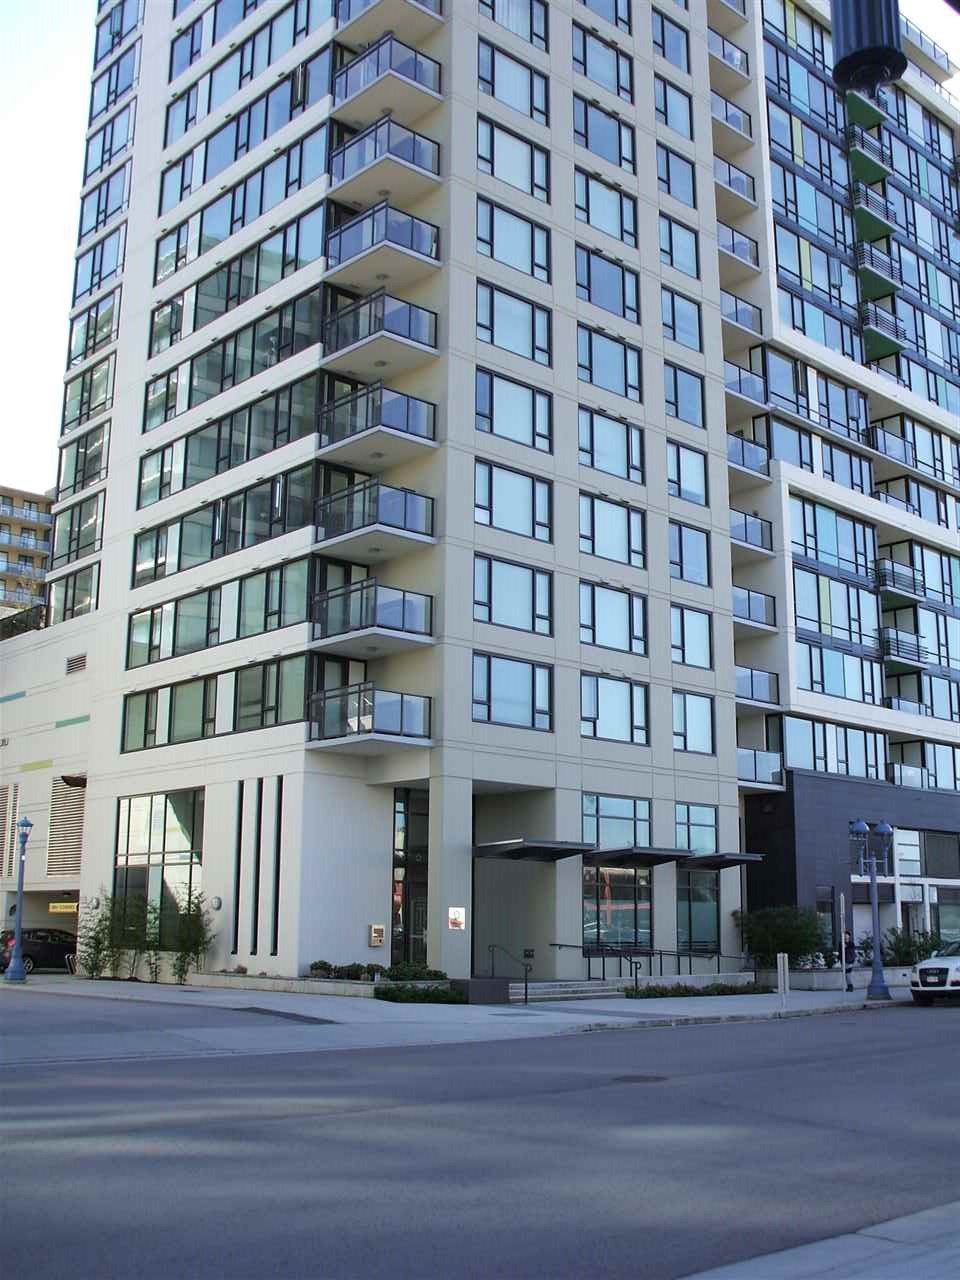 """Main Photo: 806 7888 ACKROYD Road in Richmond: Brighouse Condo for sale in """"BRIGHOUSE"""" : MLS®# R2151150"""